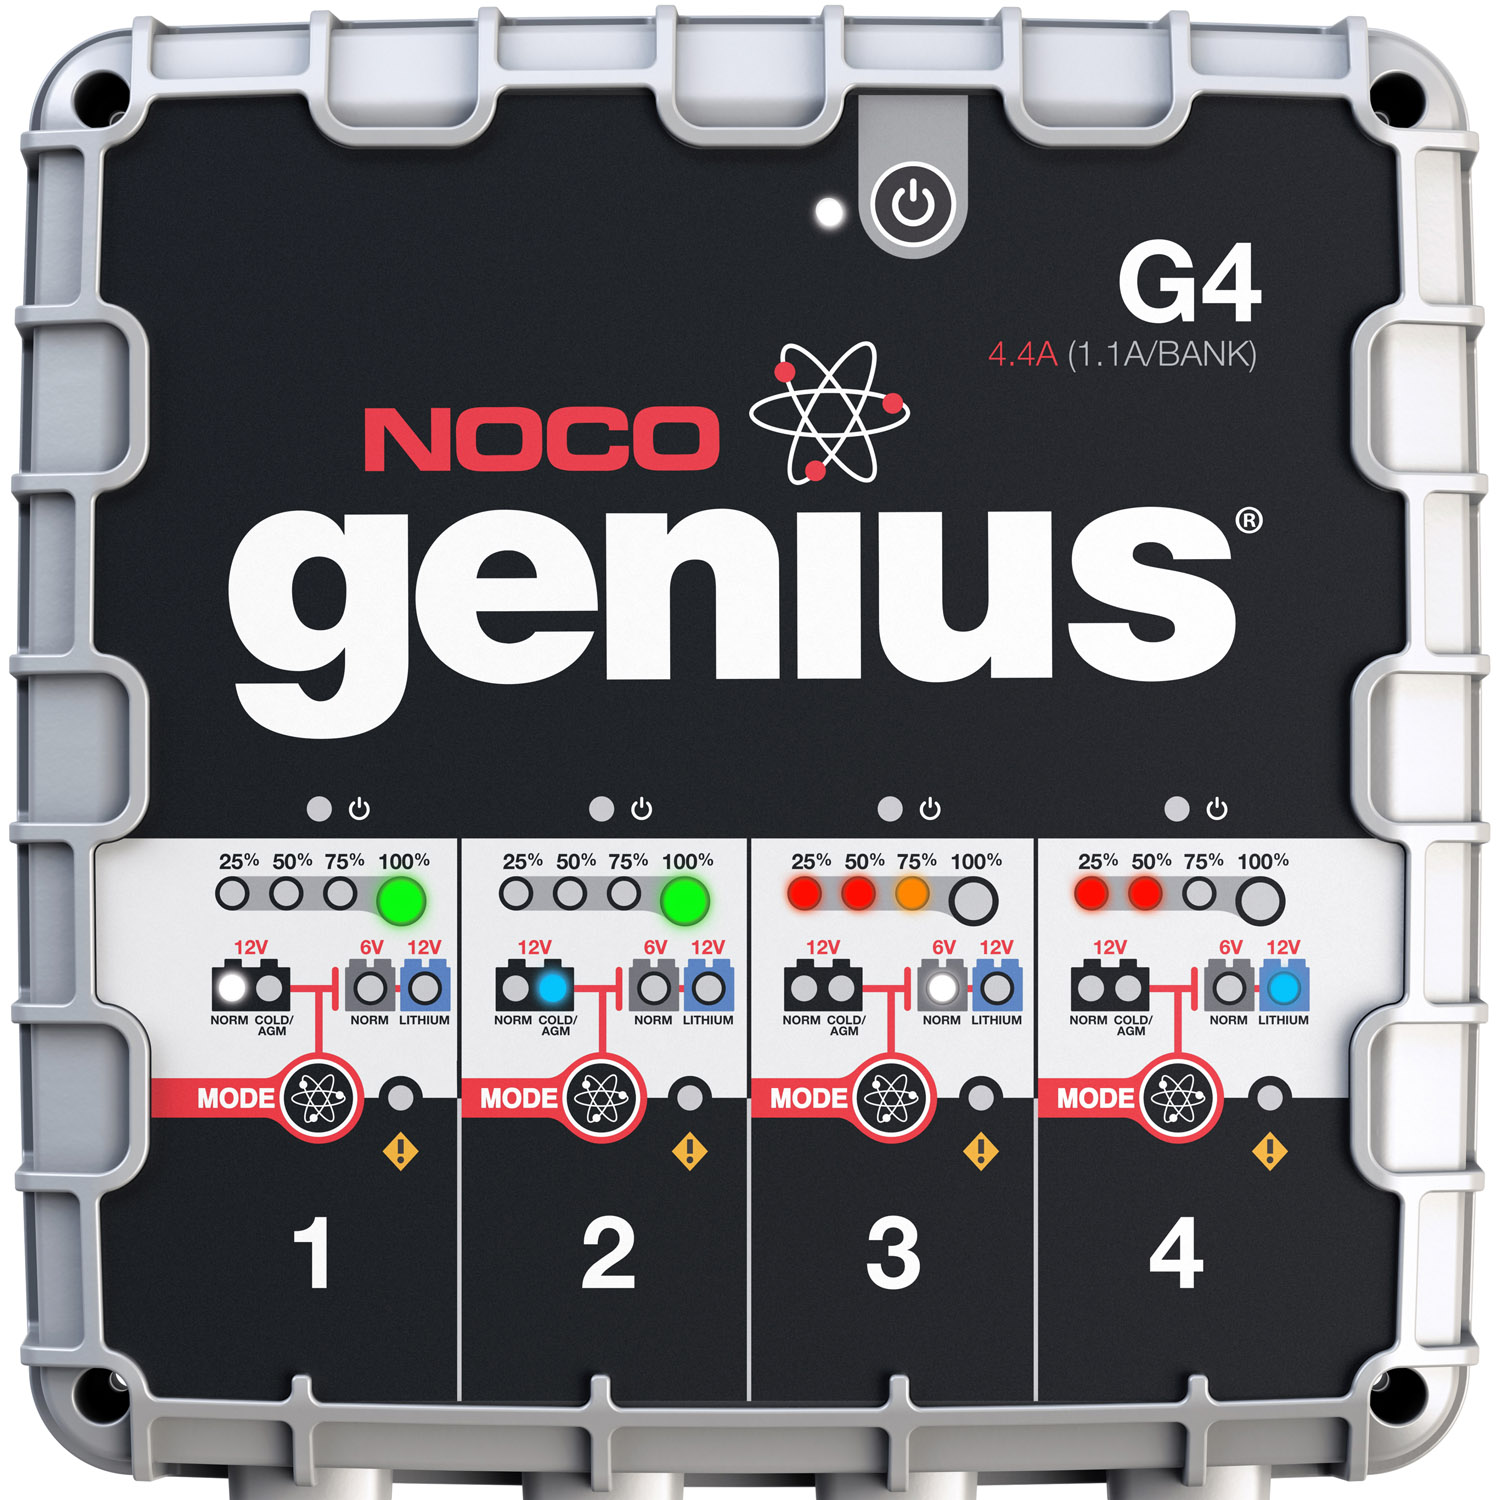 NOCO Genius G4 6V/12V 4.4 Amp 4-Bank UltraSafe Smart Battery Charger